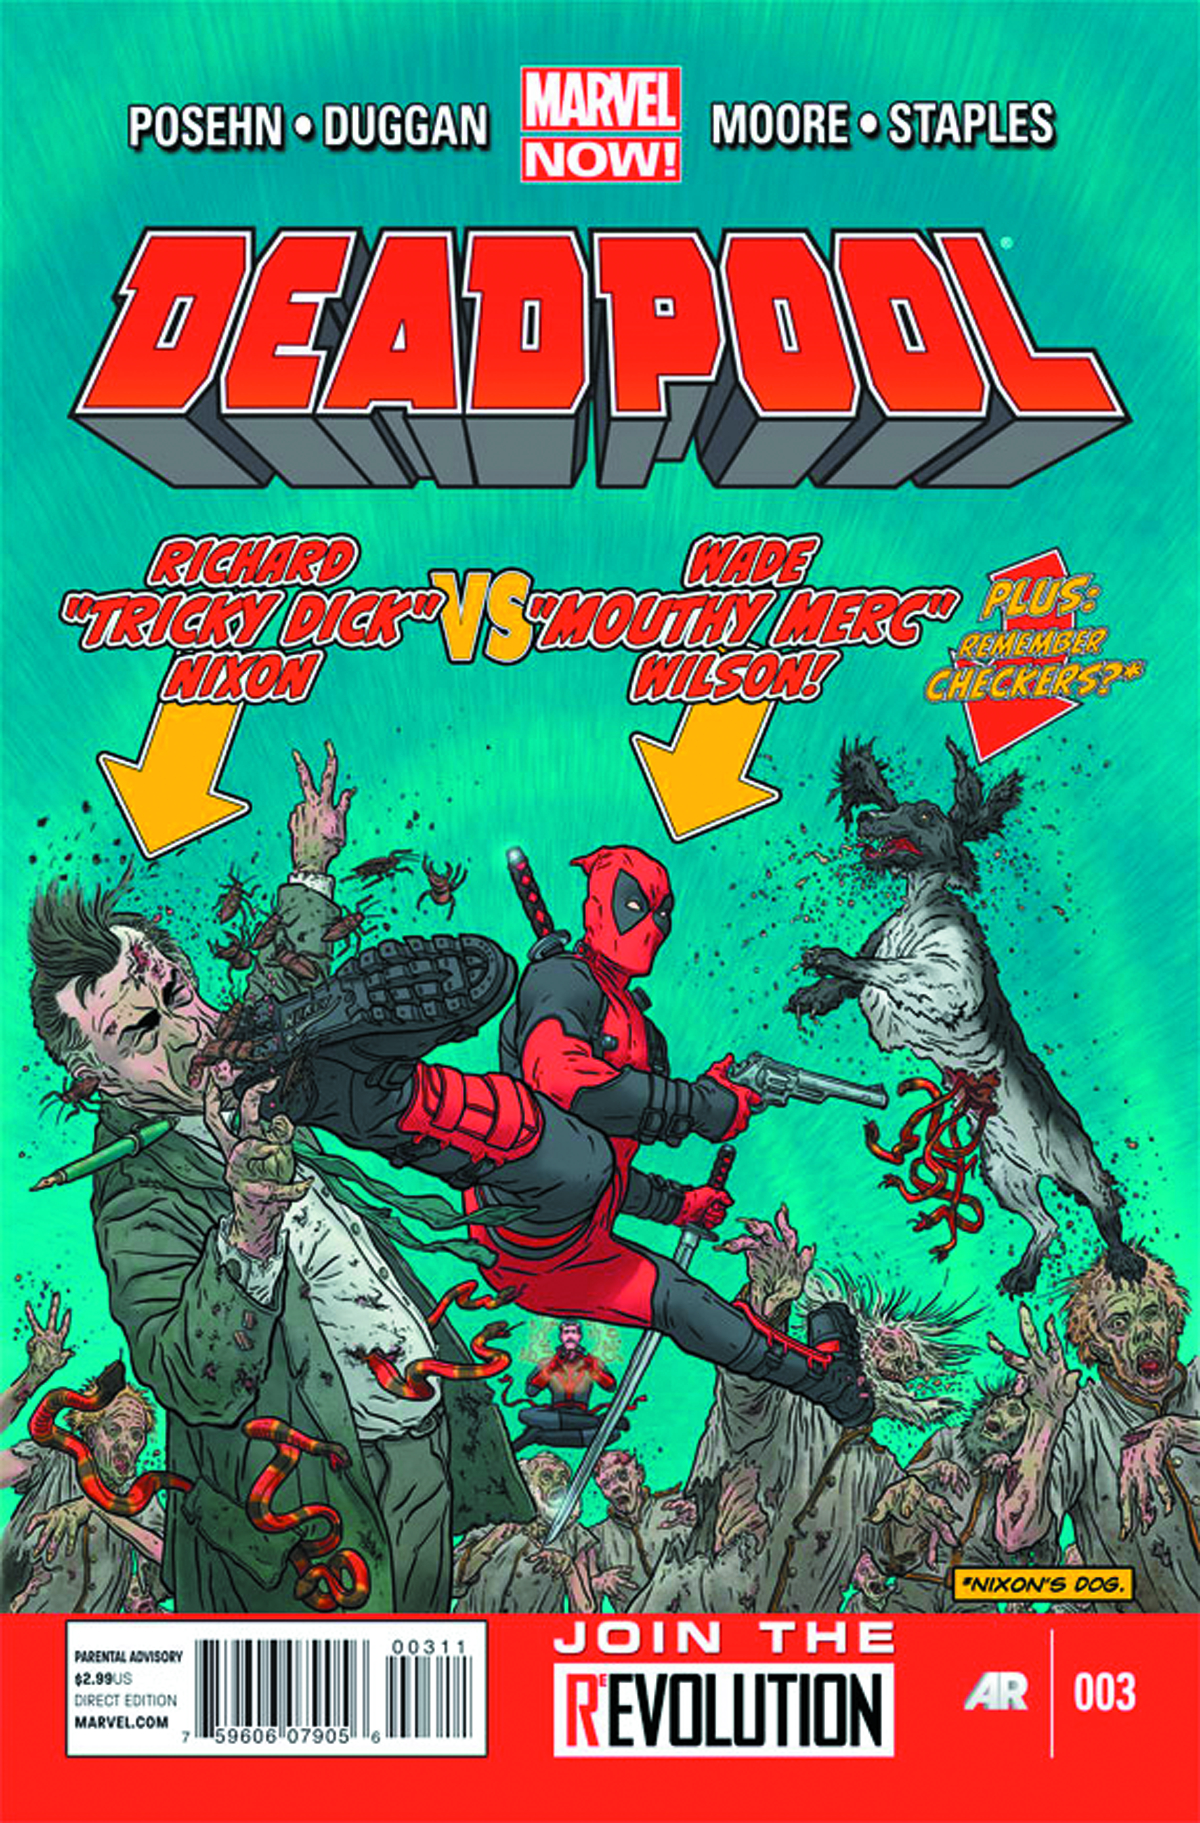 DEADPOOL #3 NOW